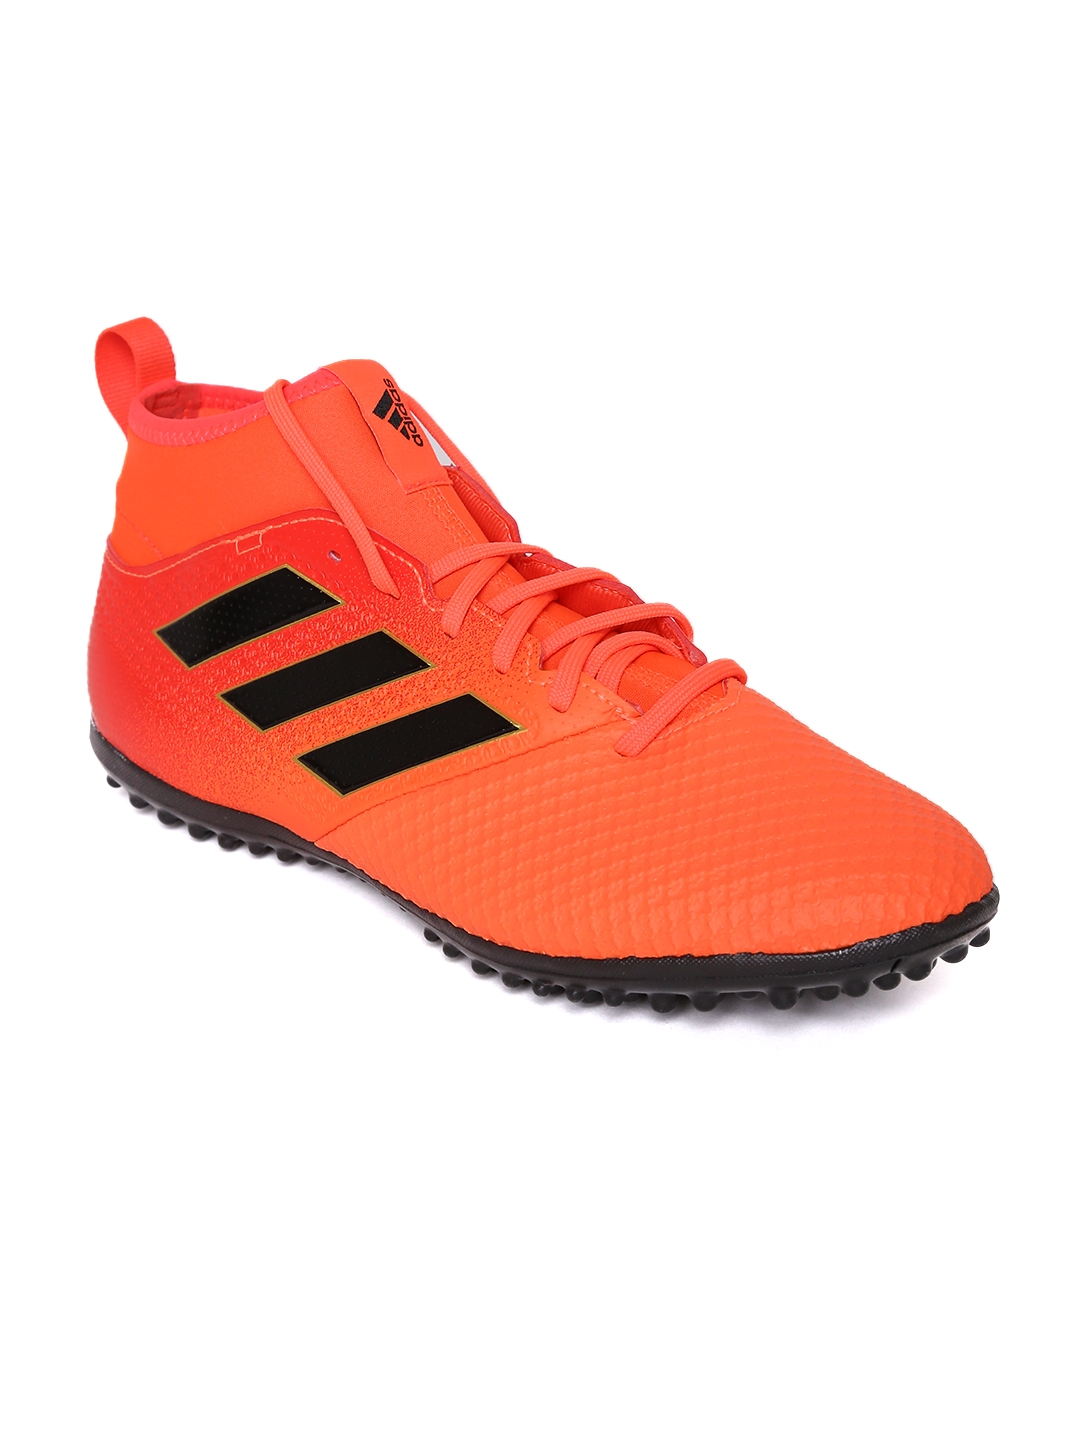 0cb94c446374 Buy ADIDAS Men Orange Ace Tango 17.3 Turf Football Shoes - Sports ...